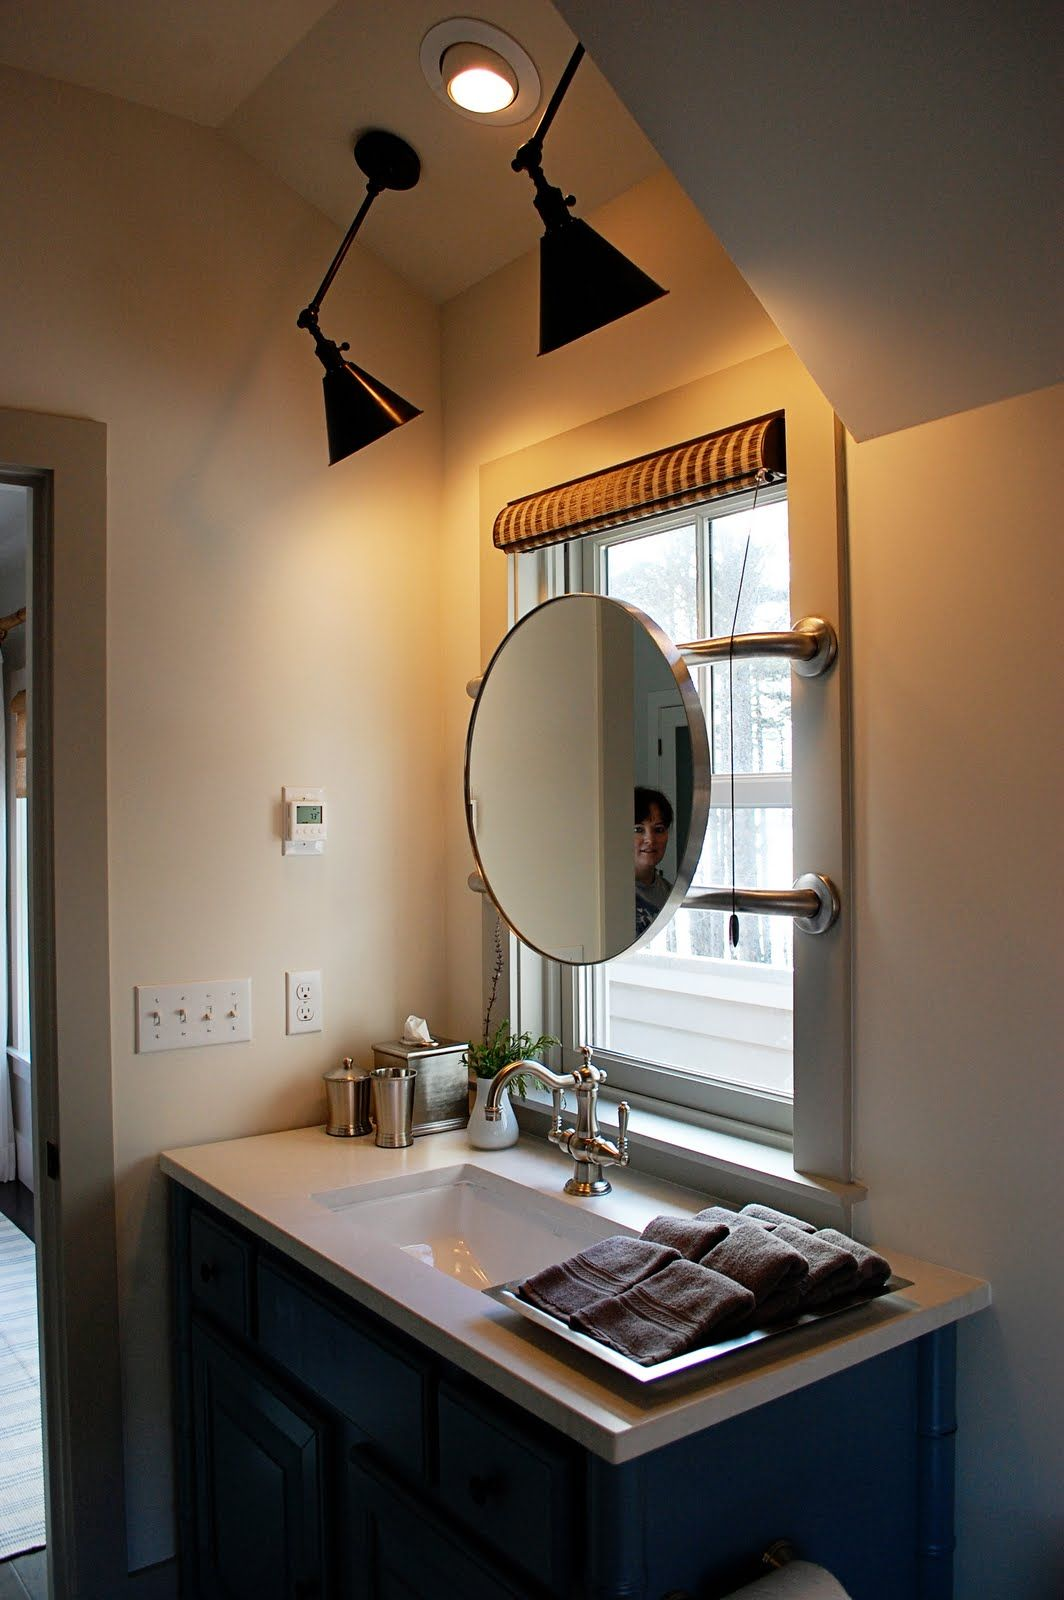 Mirror In Front Of Window Might Have To Do This In The Girls Bath Small Bathroom Decor Small Bathroom Sinks Bathroom Mirror